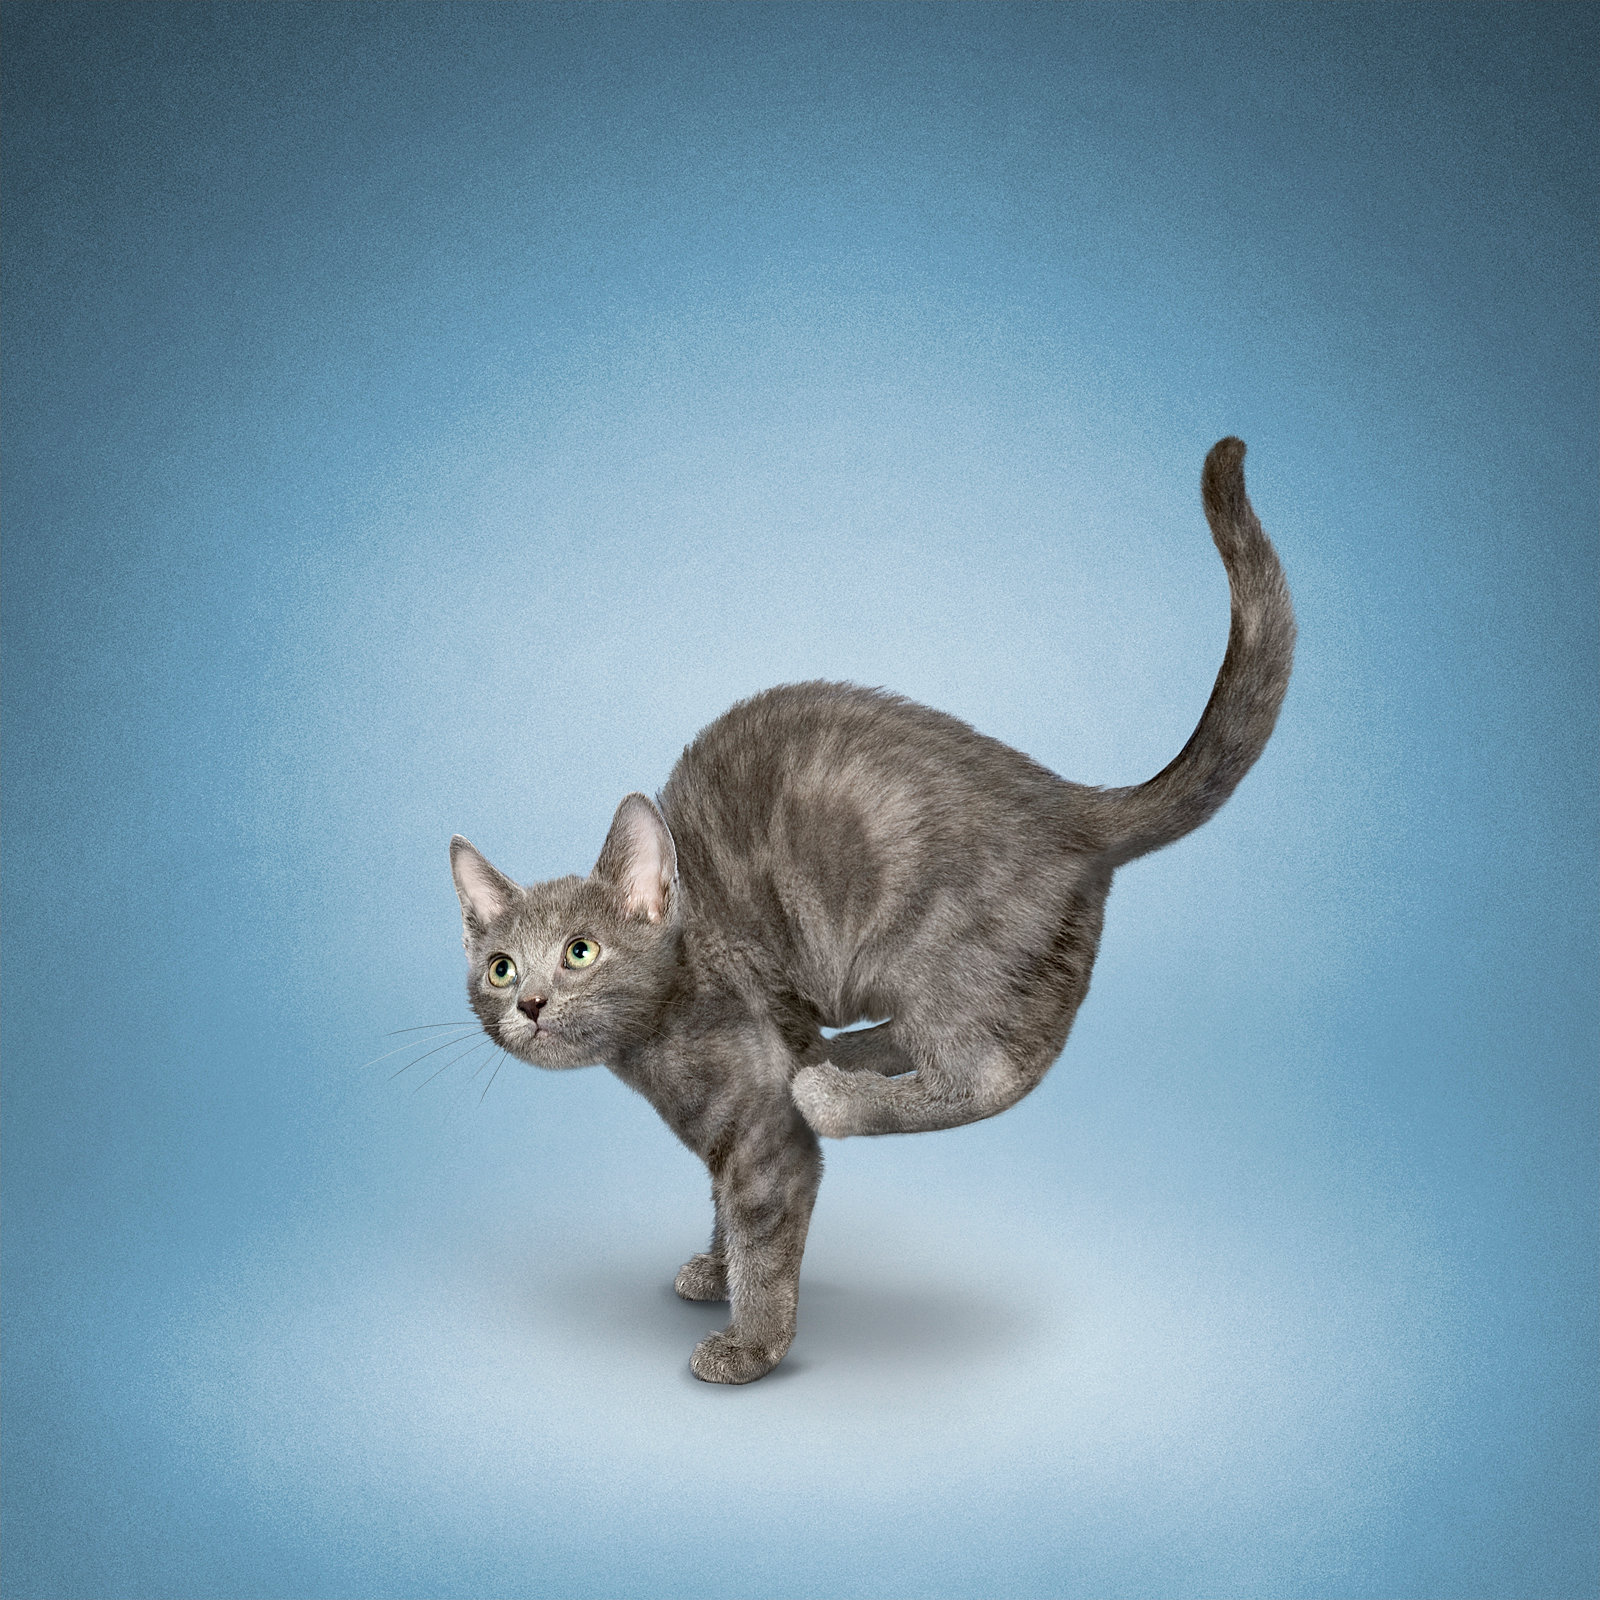 YOGA CATS | WELCOME TO YOGA CATS!